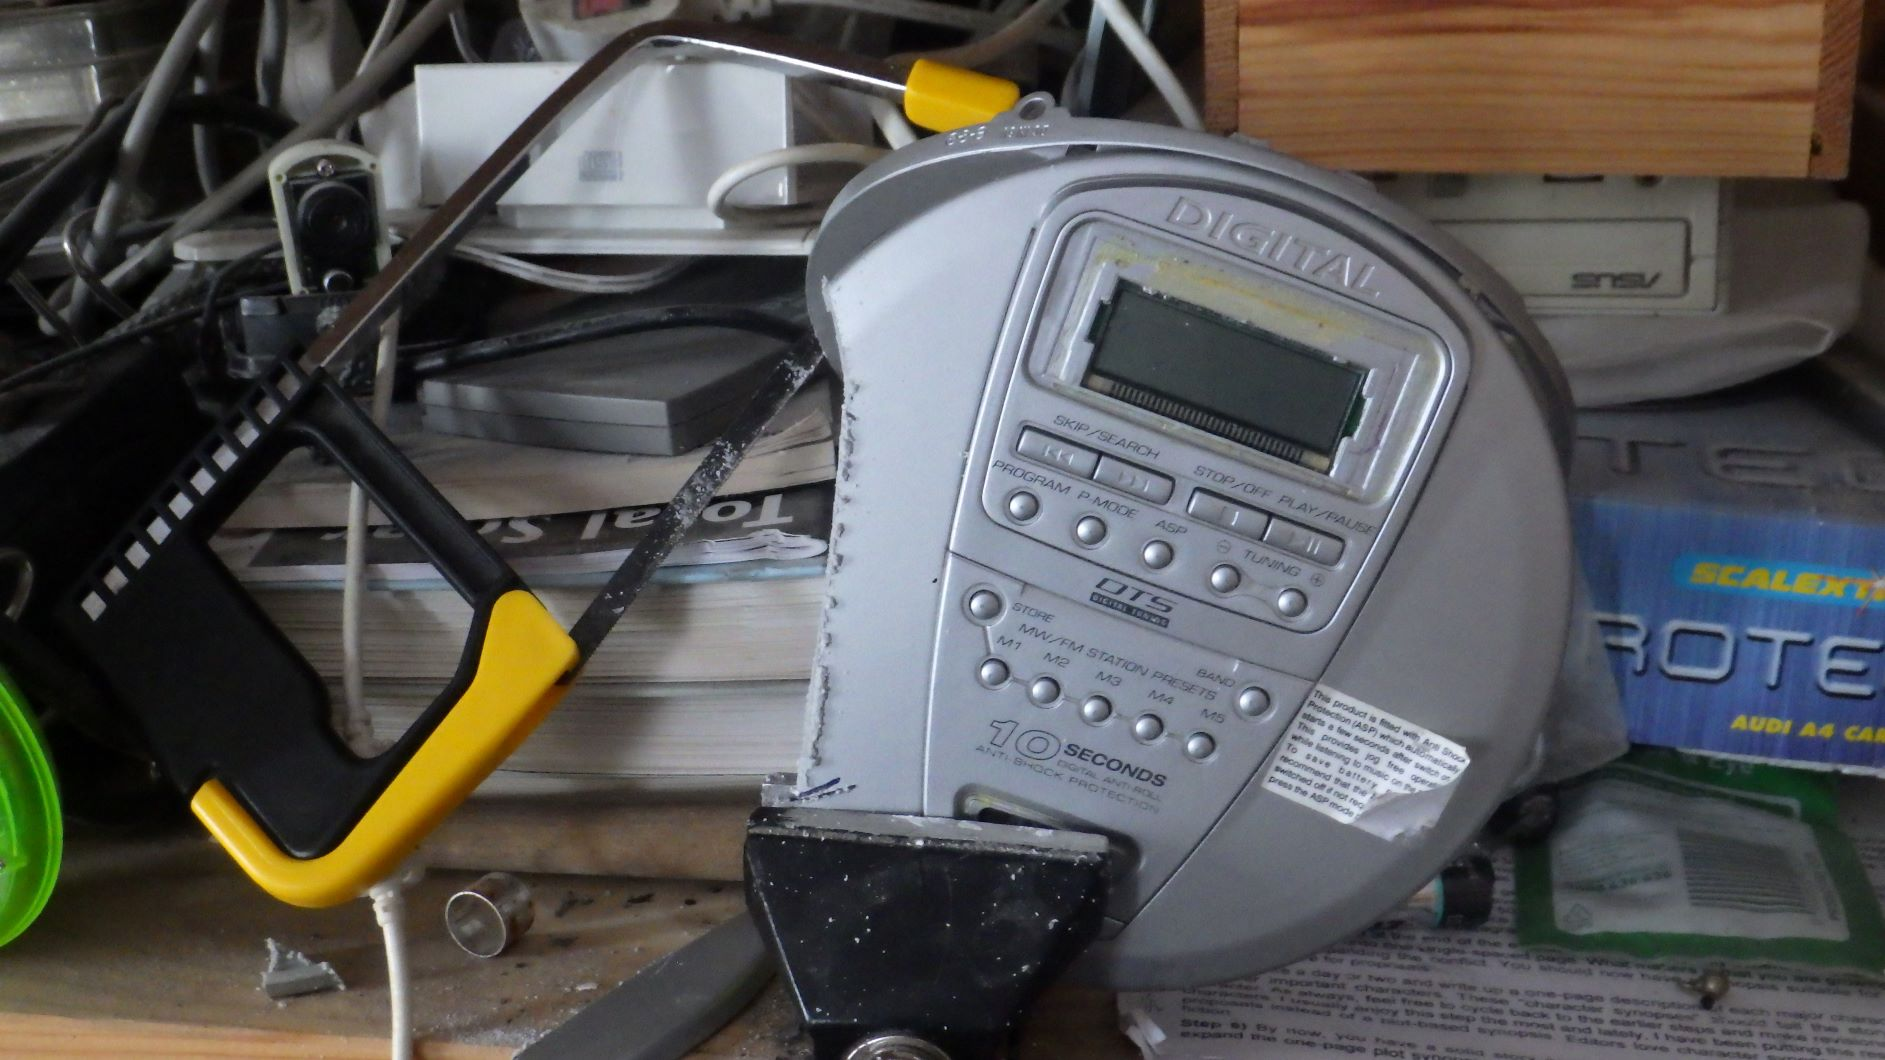 A hacked-off CD player